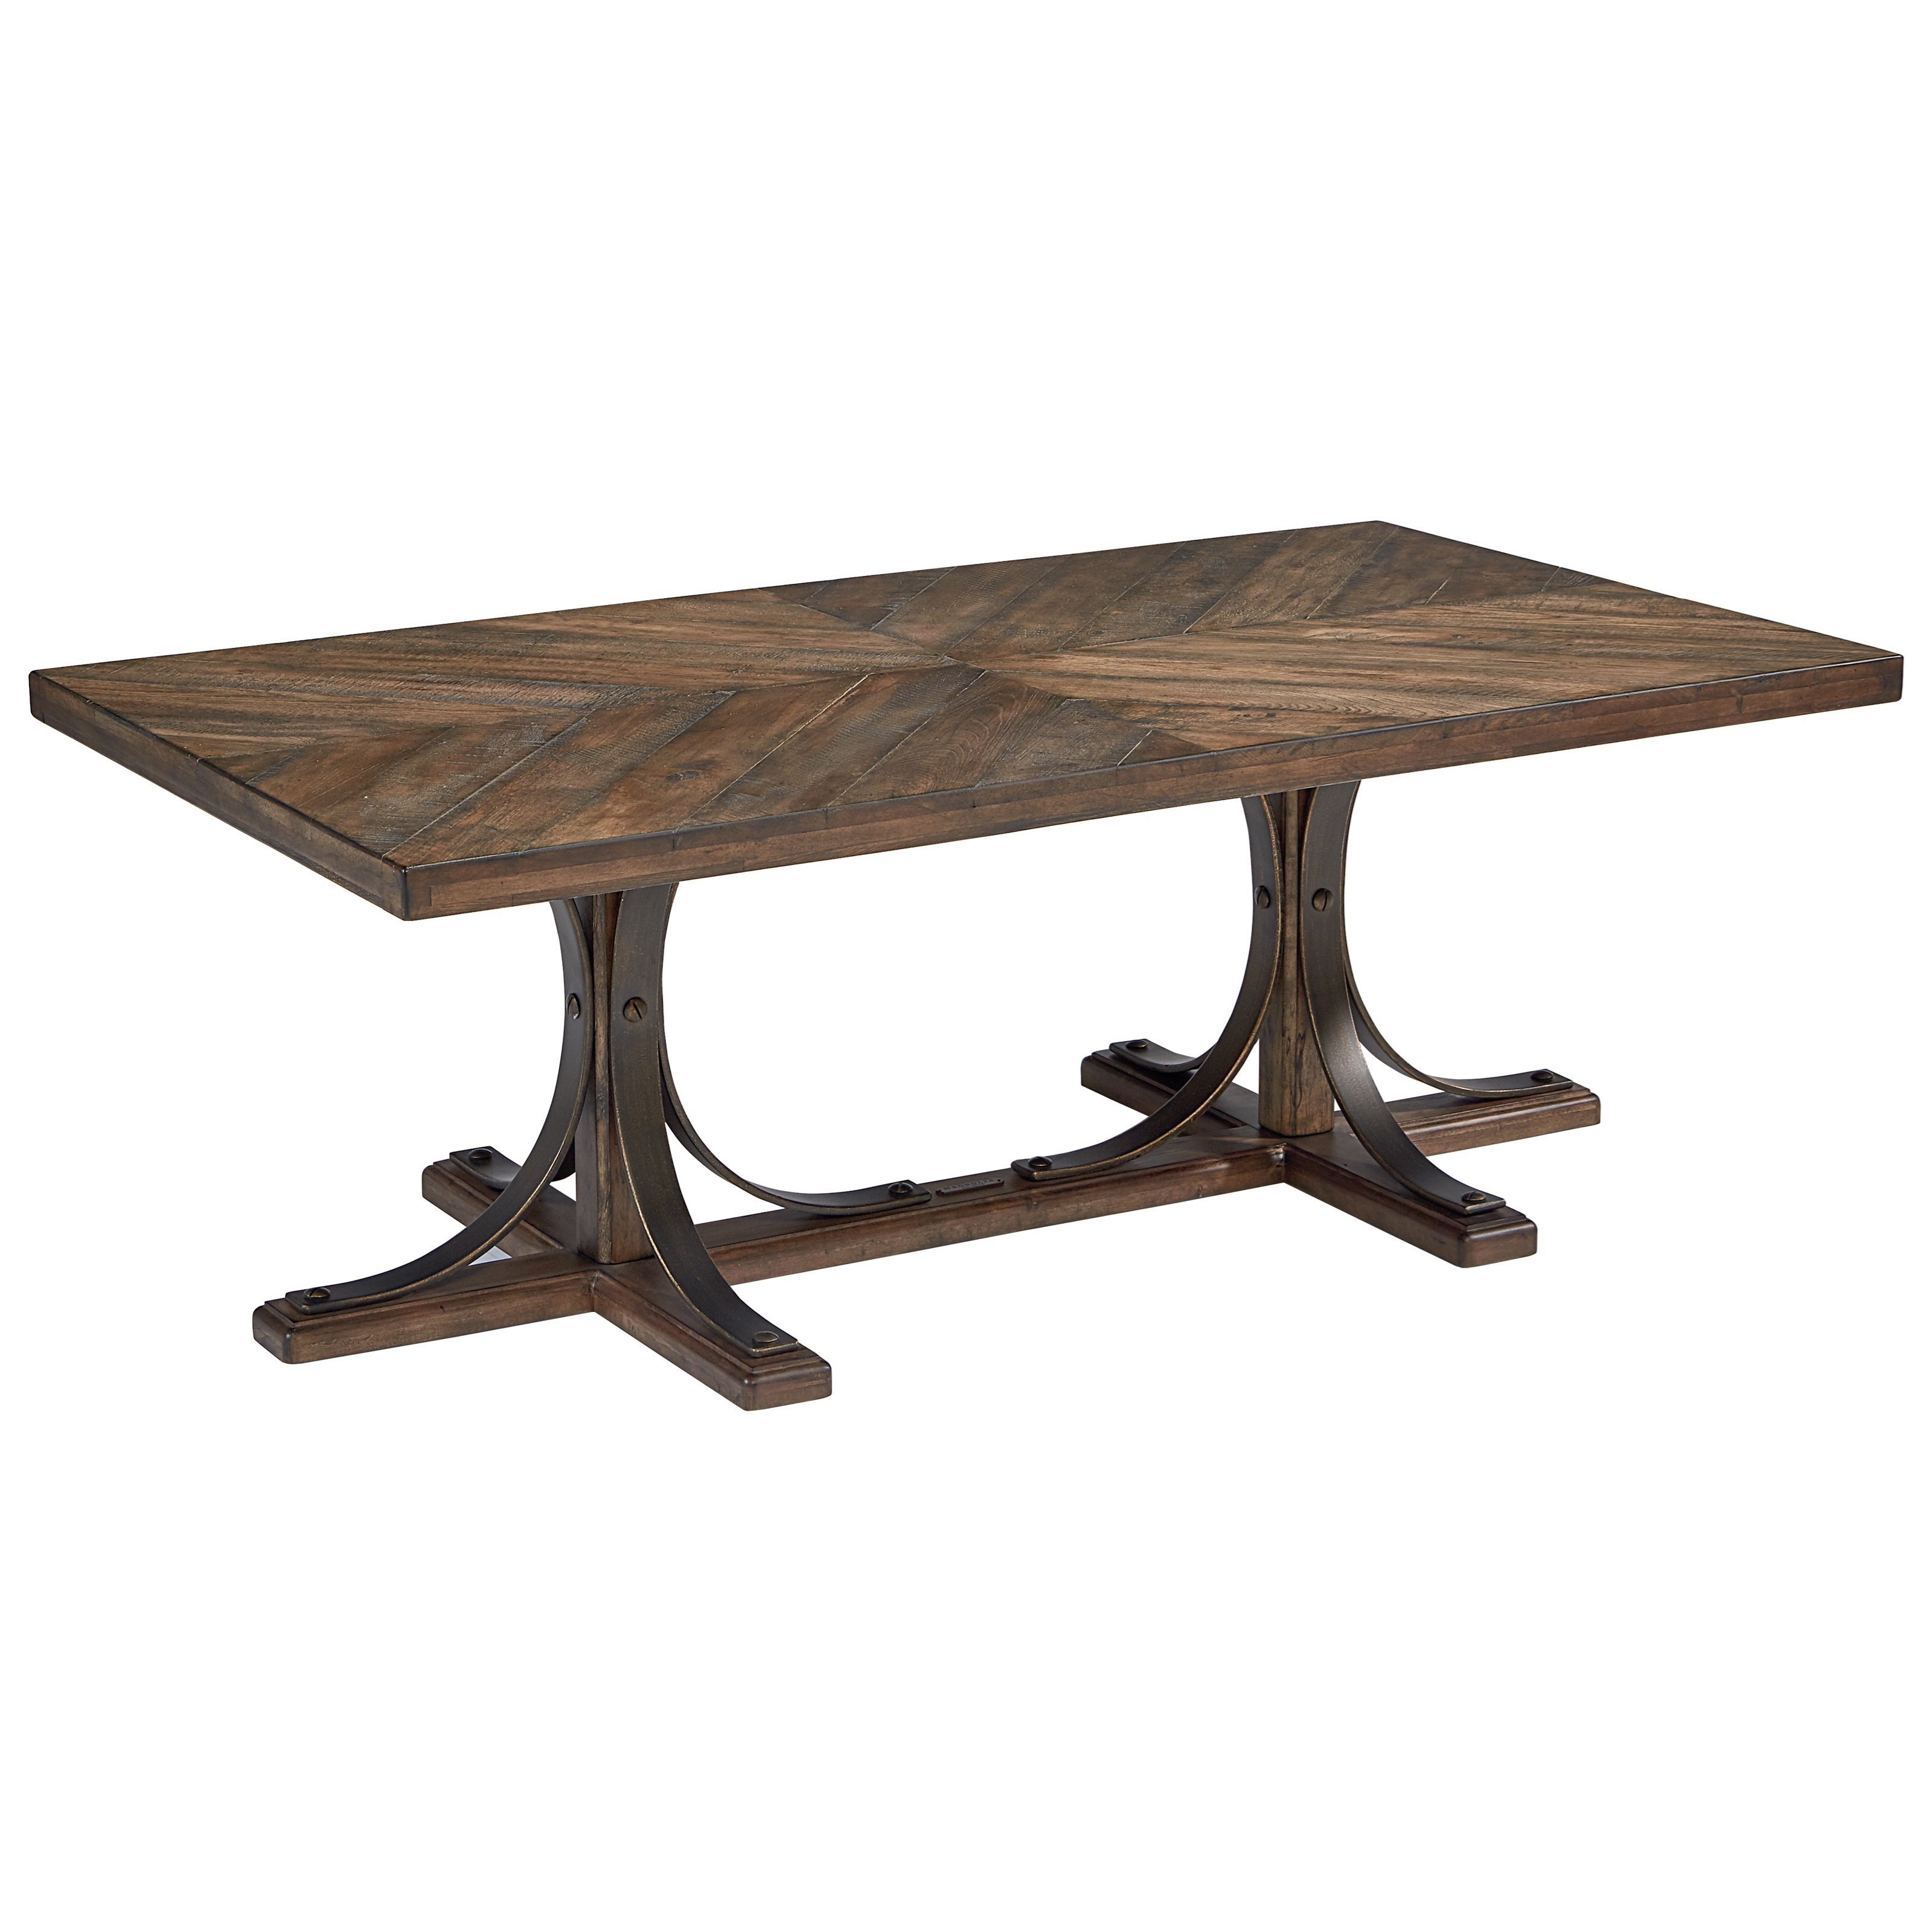 Magnolia Home By Joanna Gaines Traditional Wood Top Cocktail Table With Metal  Base   Darvin Furniture   Cocktail/Coffee Tables